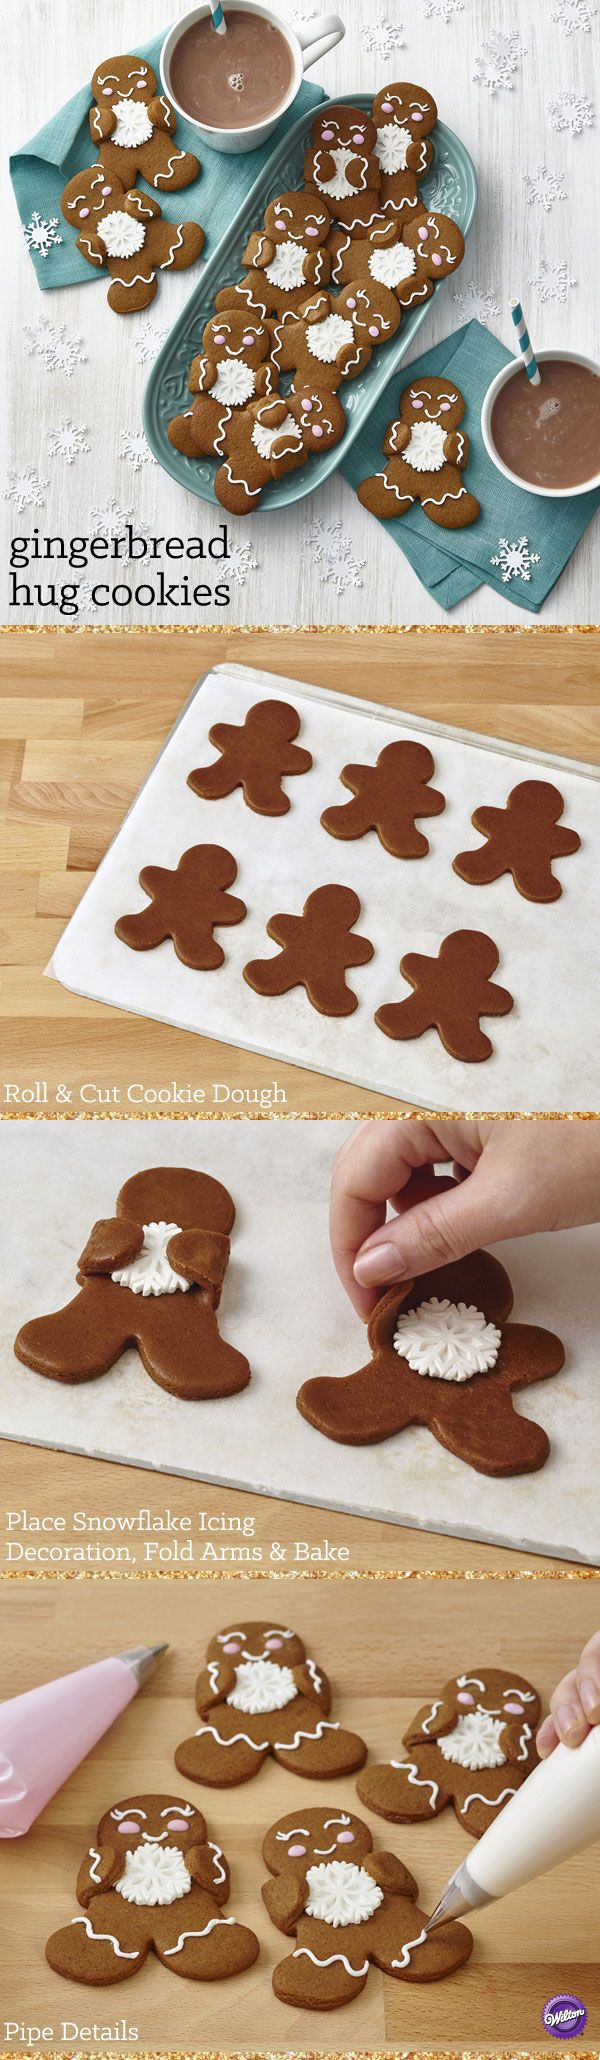 Gingerbread Hug Cookies | #christmas #xmas #holiday #food #desserts